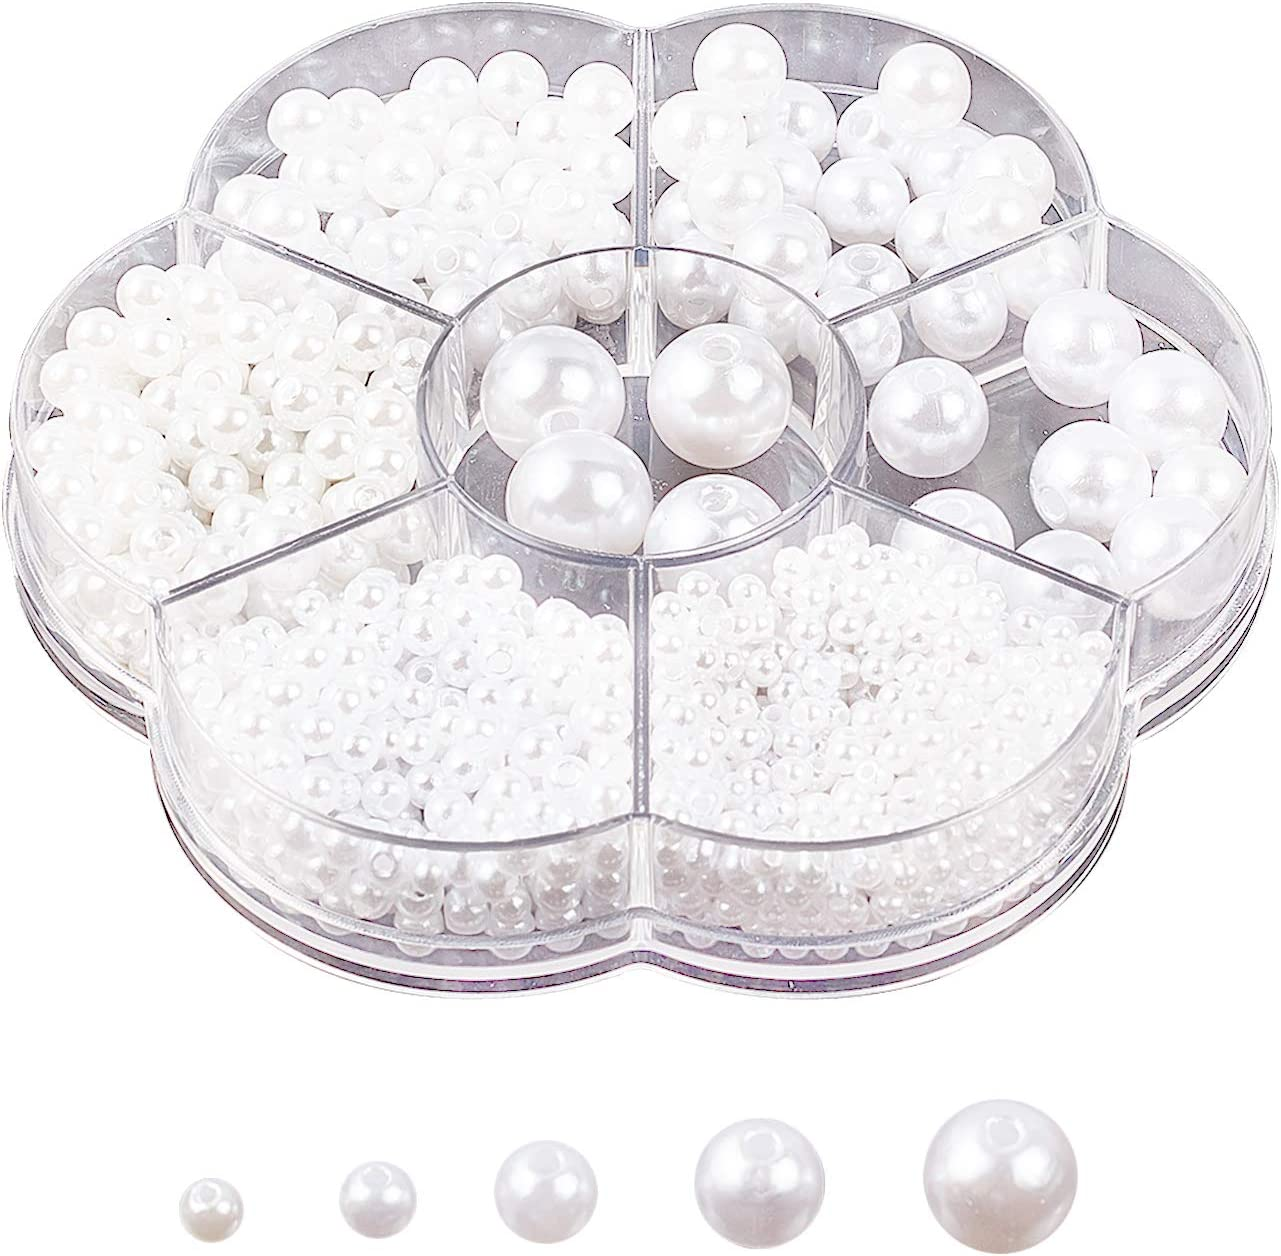 arricraft About 899 Pcs 7 Sizes Columbus Mall Plastic Beads Pearl Manufacturer direct delivery Round White